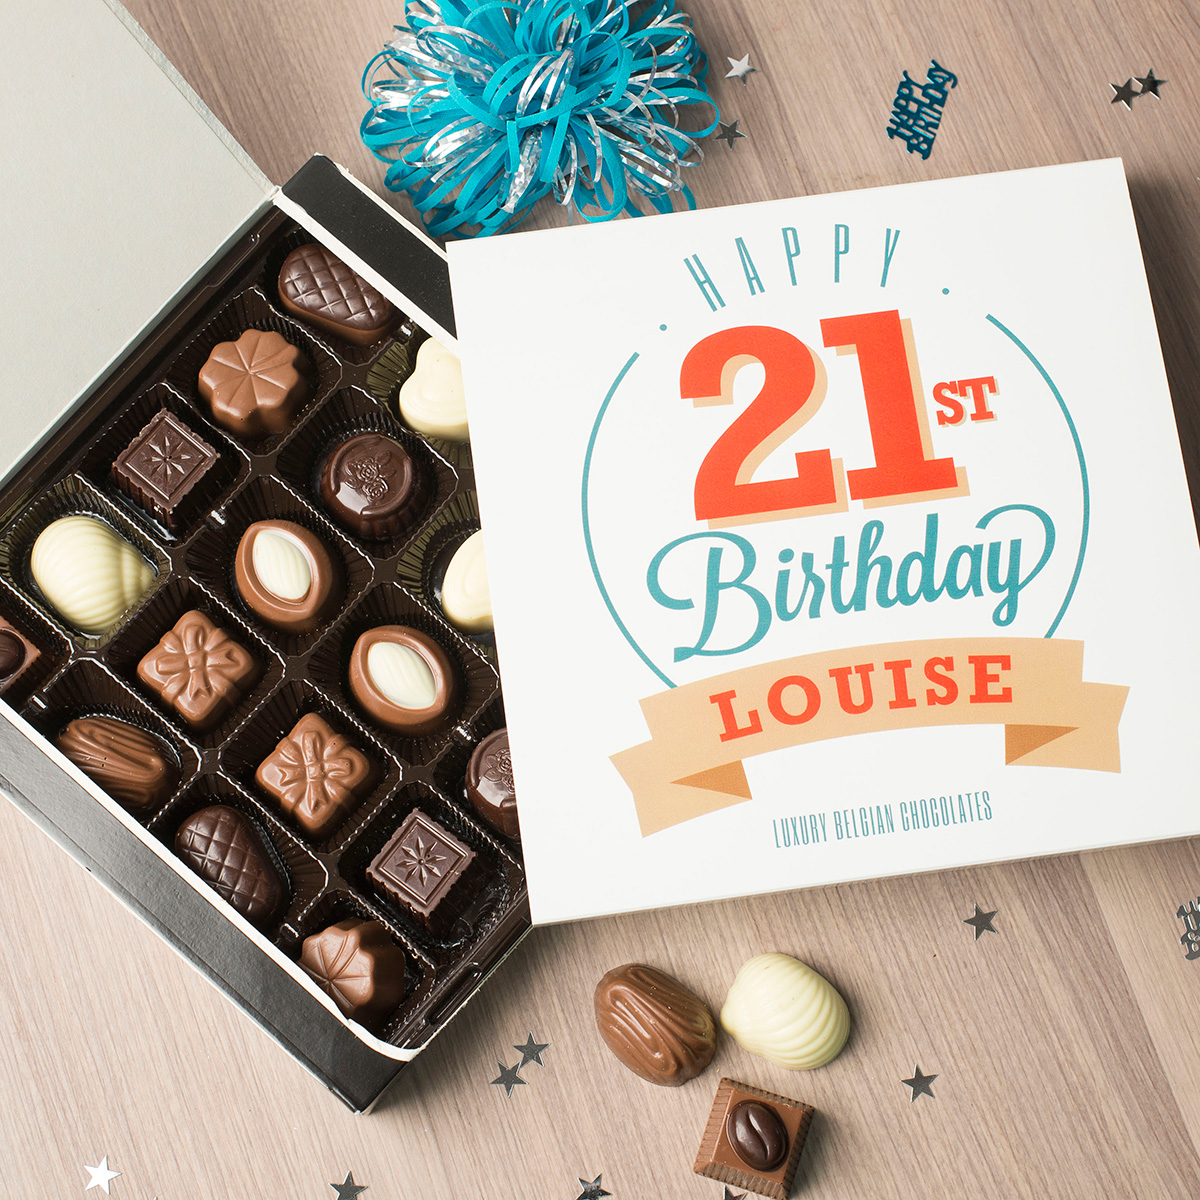 Personalised Belgian Chocolates - Happy 21st Birthday - 21st gift